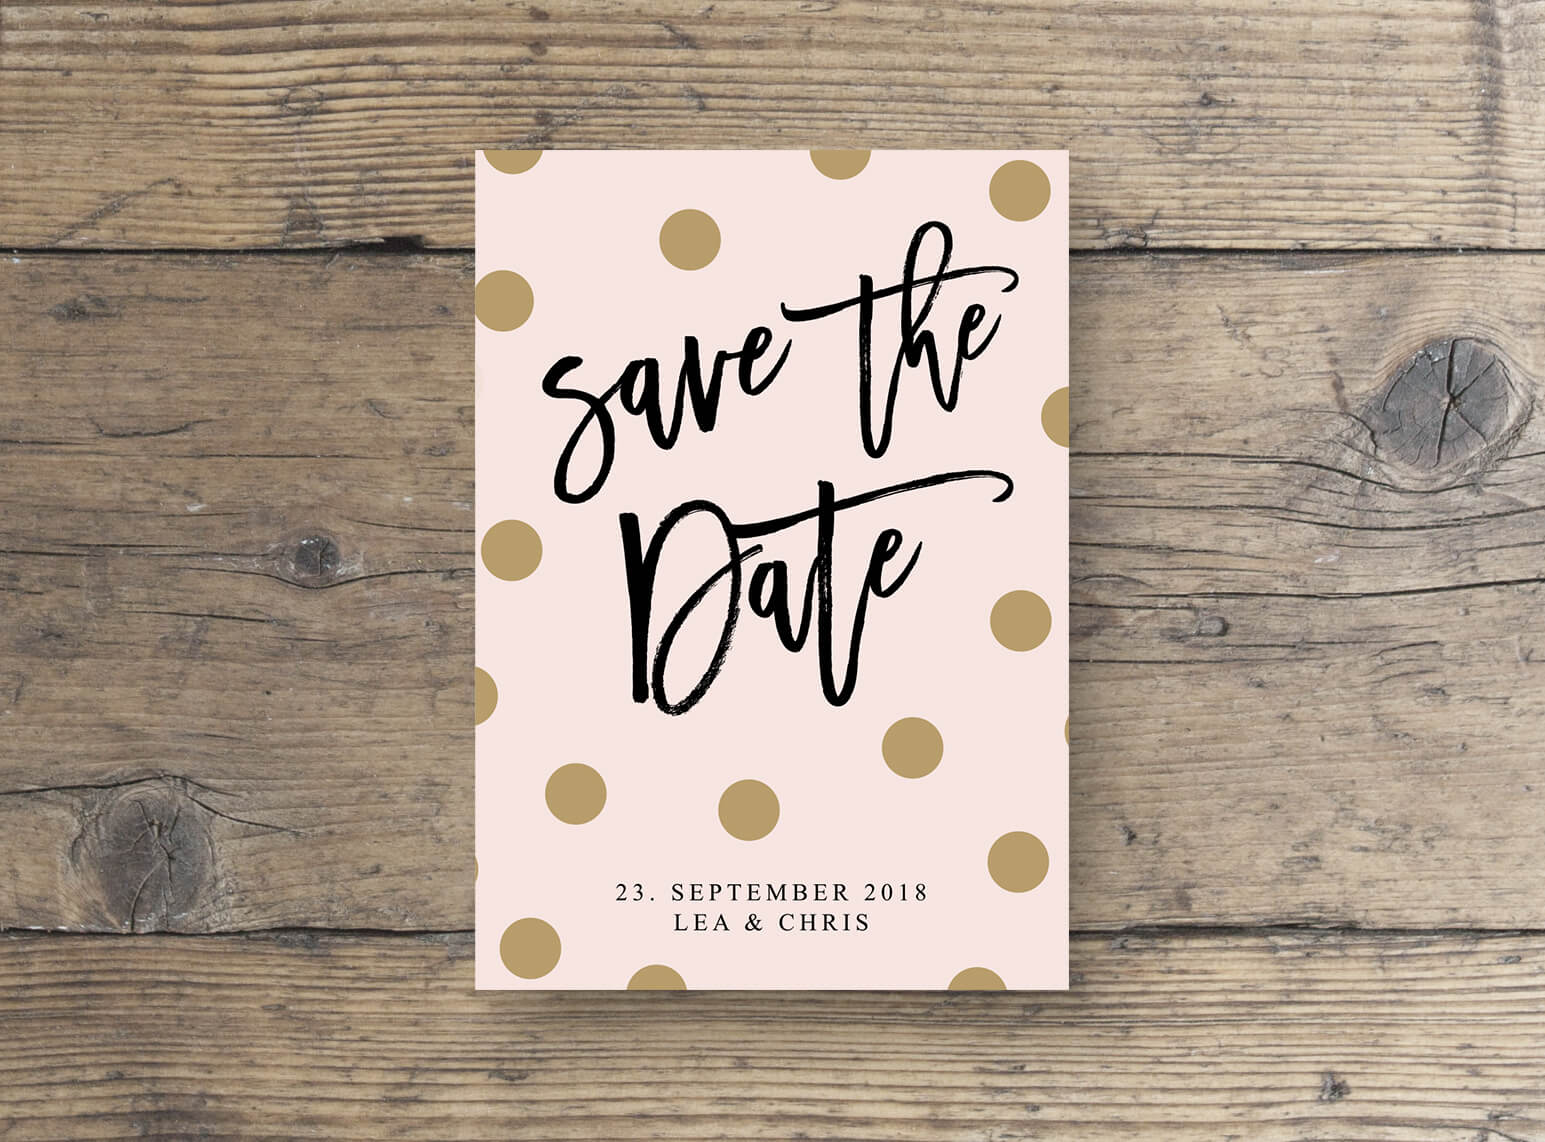 Save the Date Postkarte Save The Date Postkarte mit goldenen Punkten, rosa gold effekt / dots / punkte / verspielt modern / script Schrift